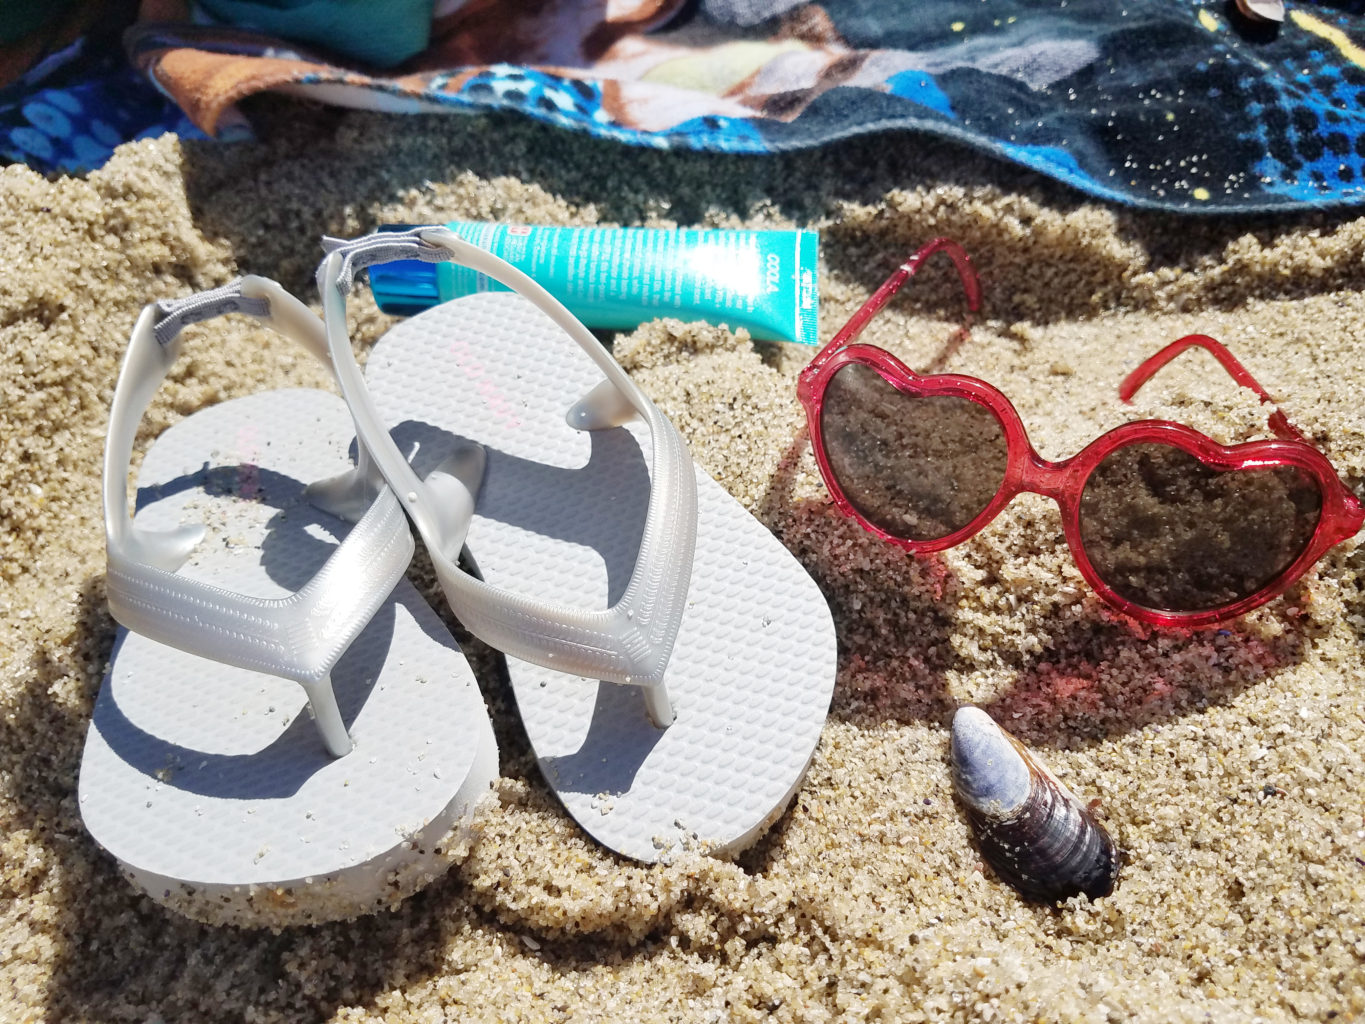 Toddler flip flops and sunglasses with sunscreen and a shell on the beach